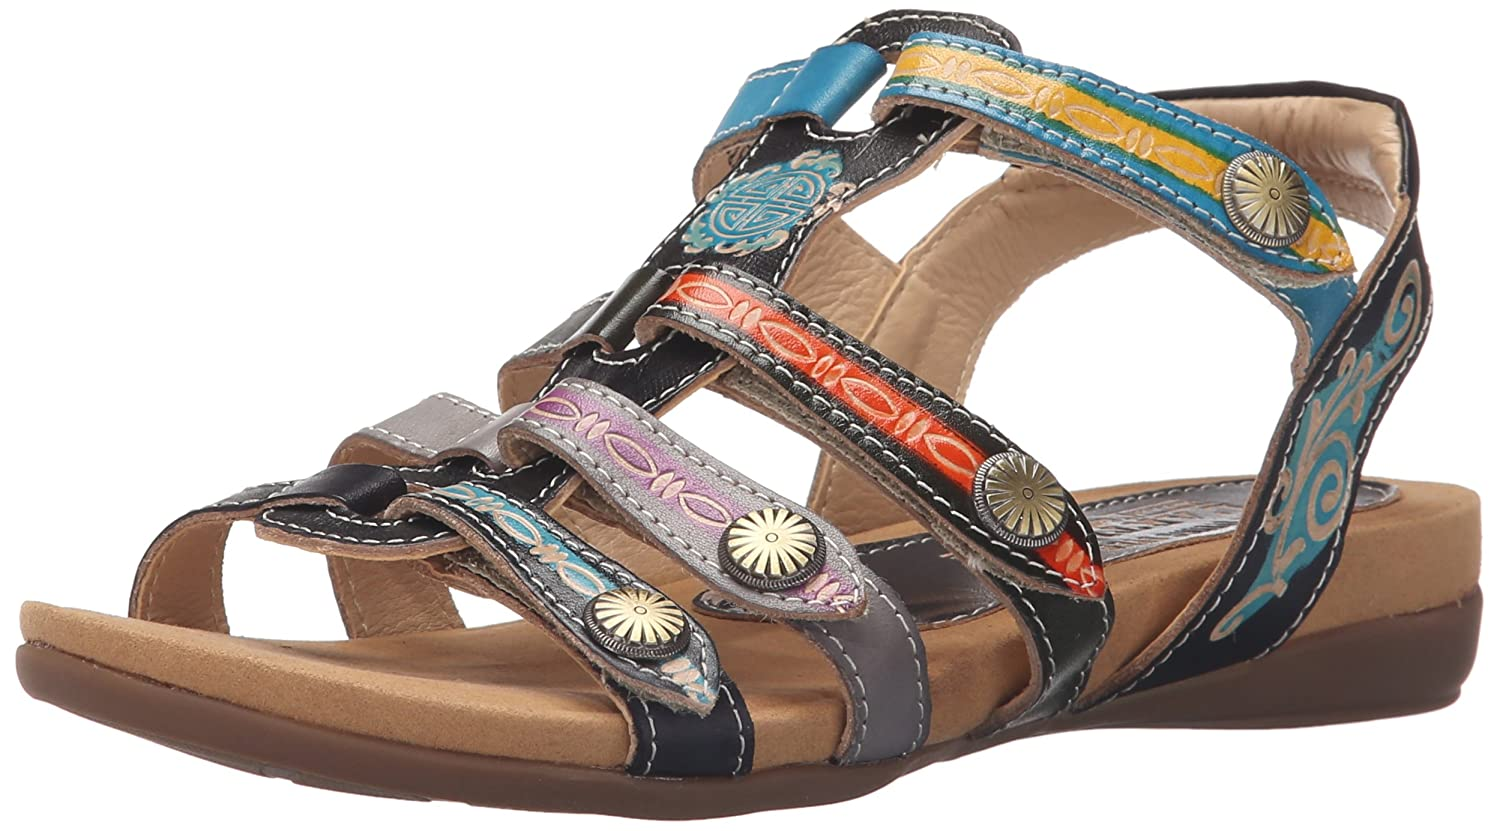 L'Artiste by Spring Step Women's Gipsy Flat Sandal B015QV47TM 40 M EU / 9 B(M) US|Black/Multi